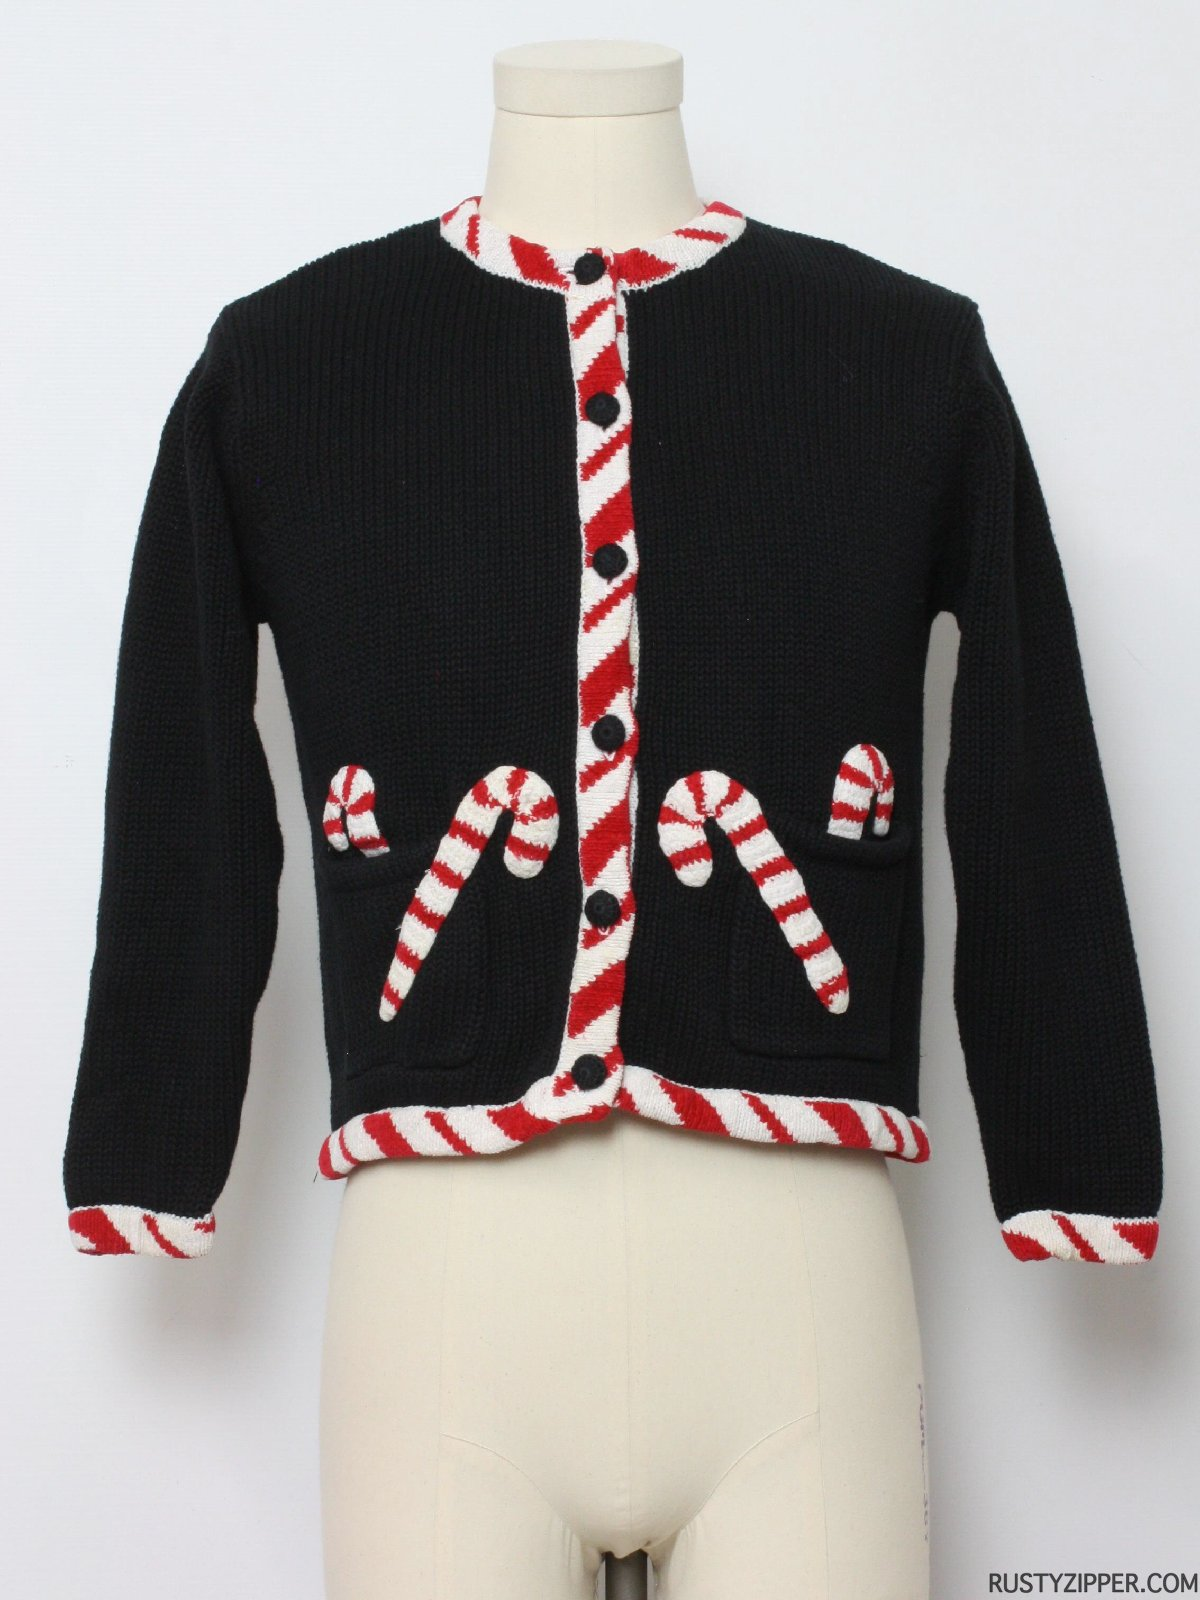 Ugly christmas sweater round neckline featuring candy canes